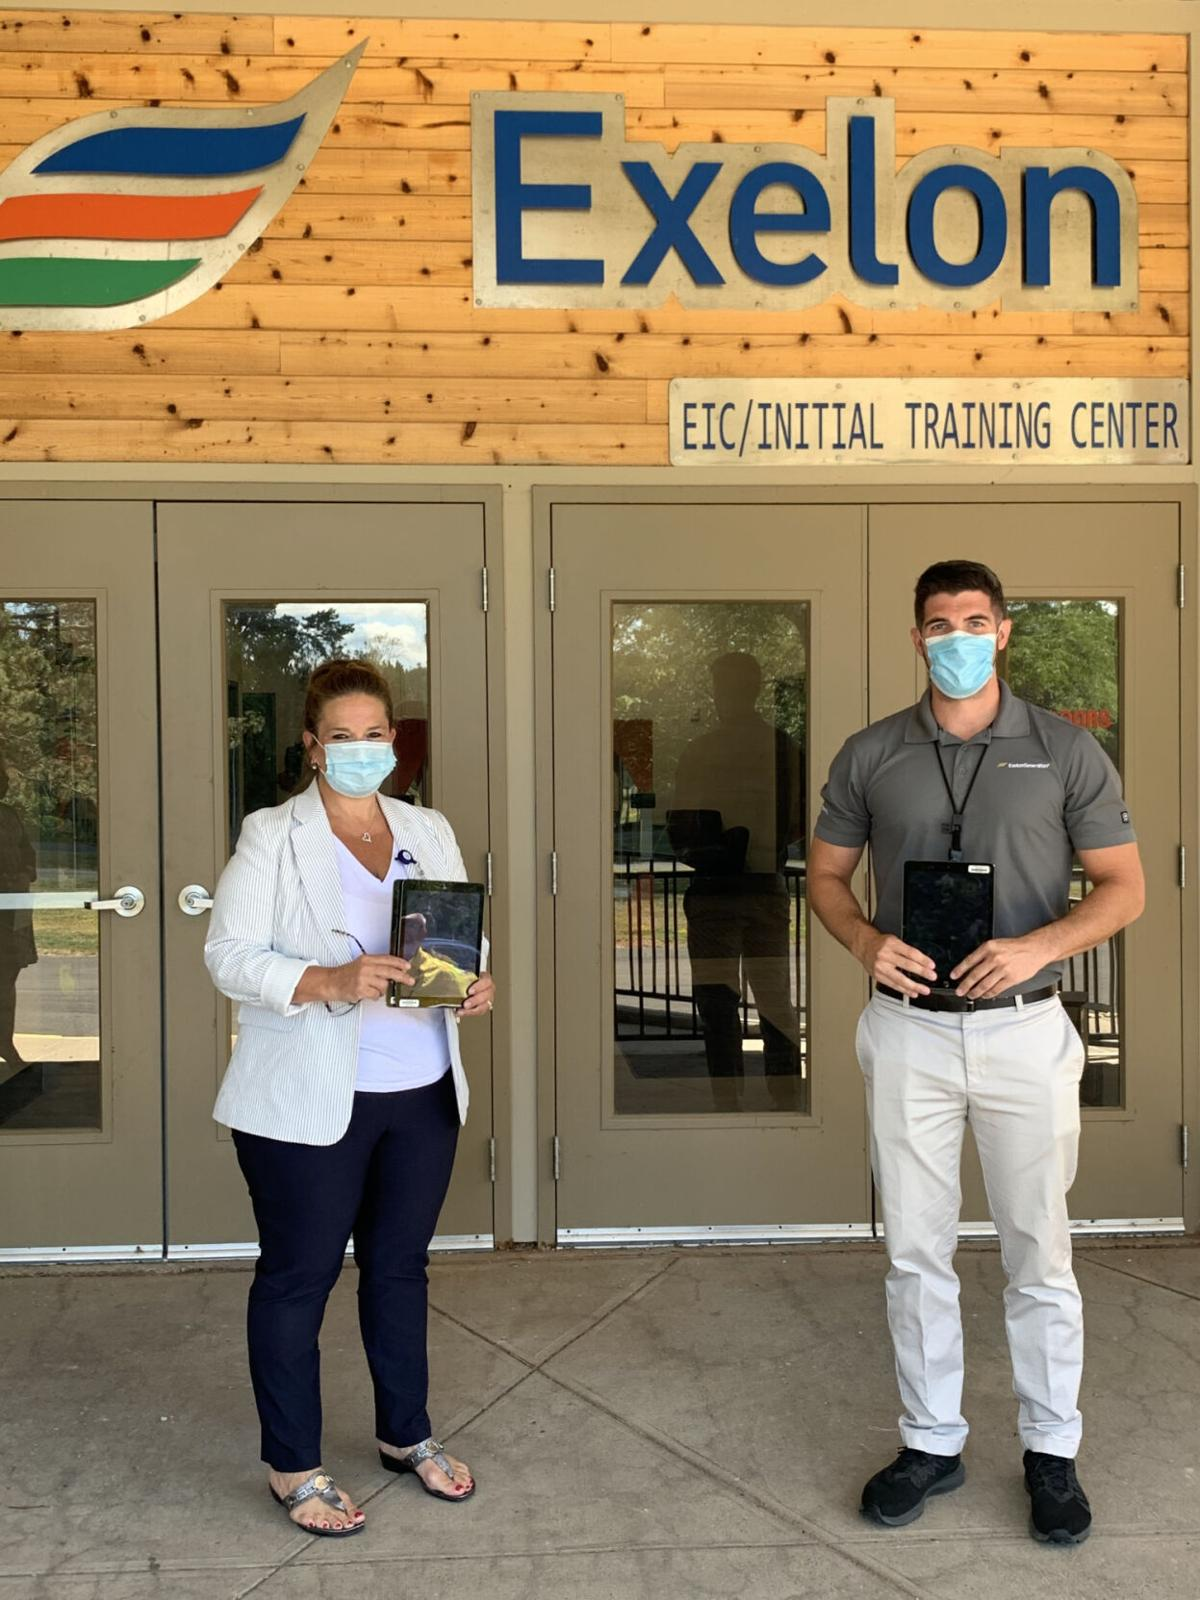 Exelon donates iPads to Oswego Health to assist patients with access to care